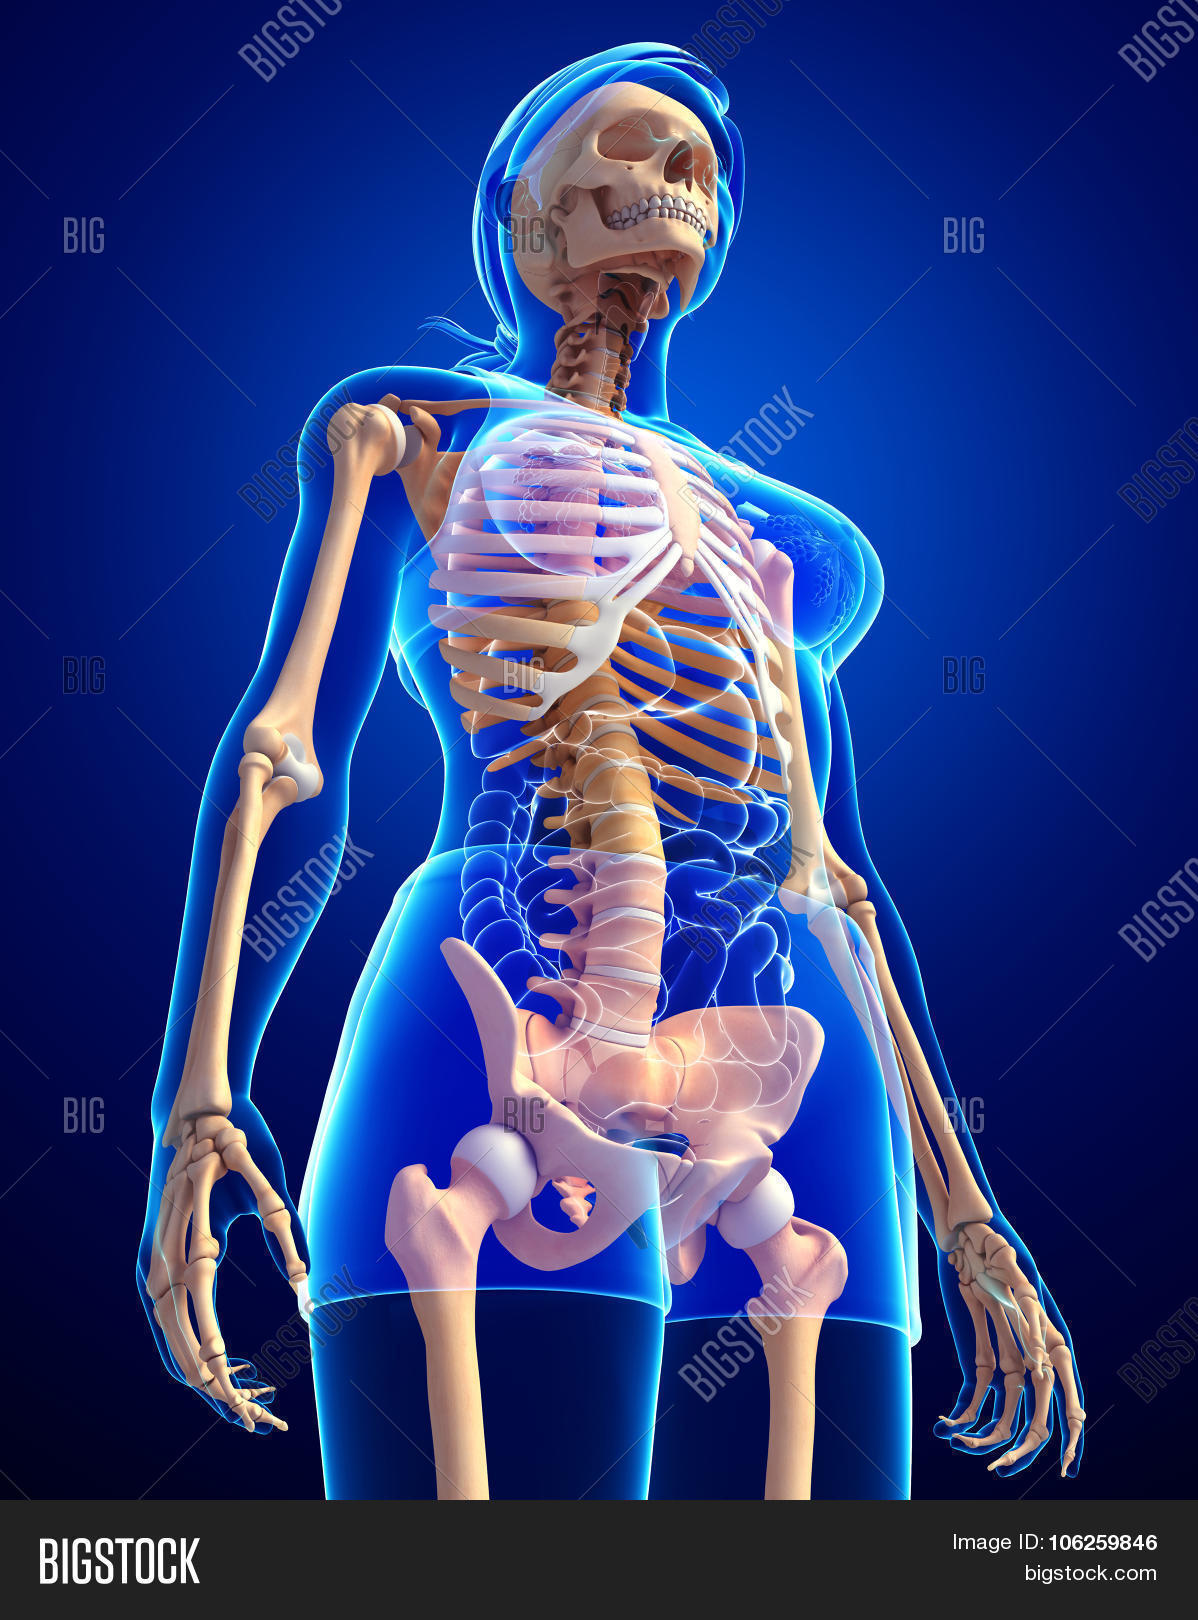 Human Skeleton Side Image Photo Free Trial Bigstock